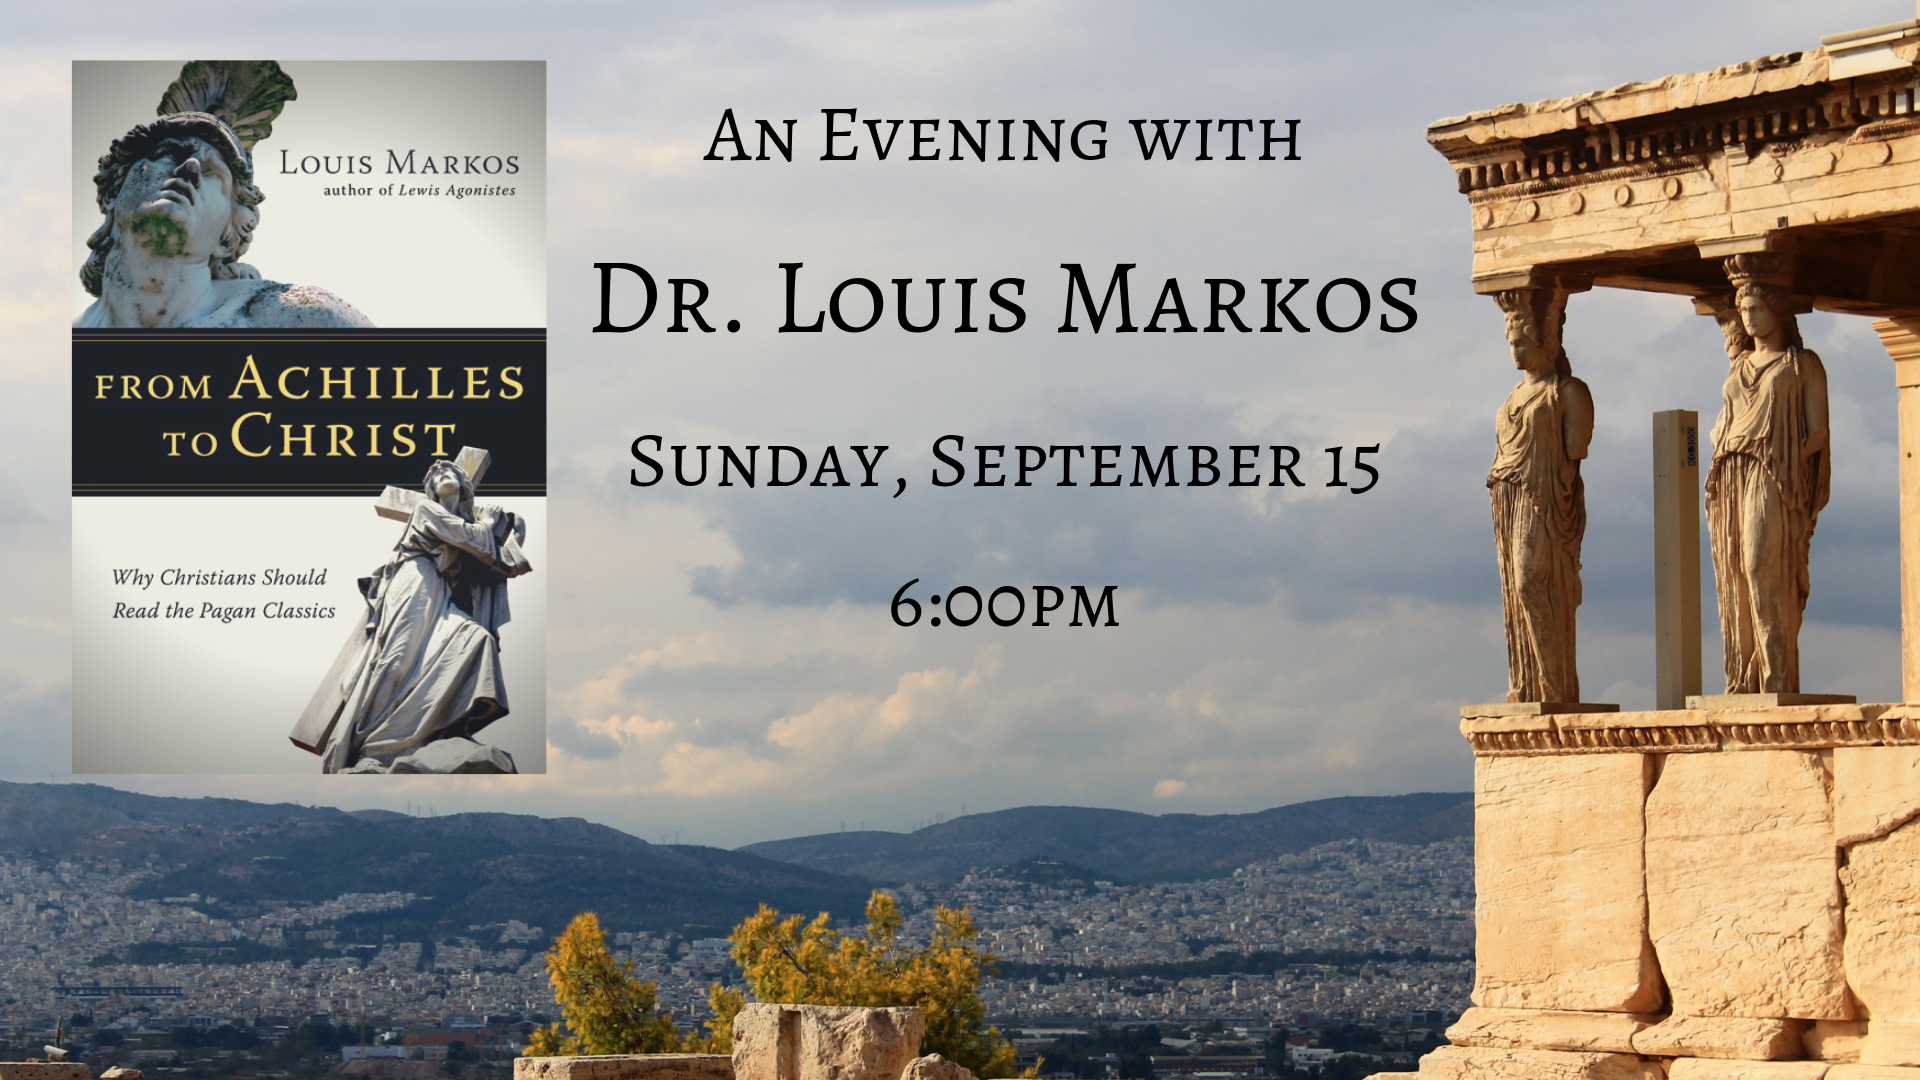 An Evening with Dr. Louis Markos